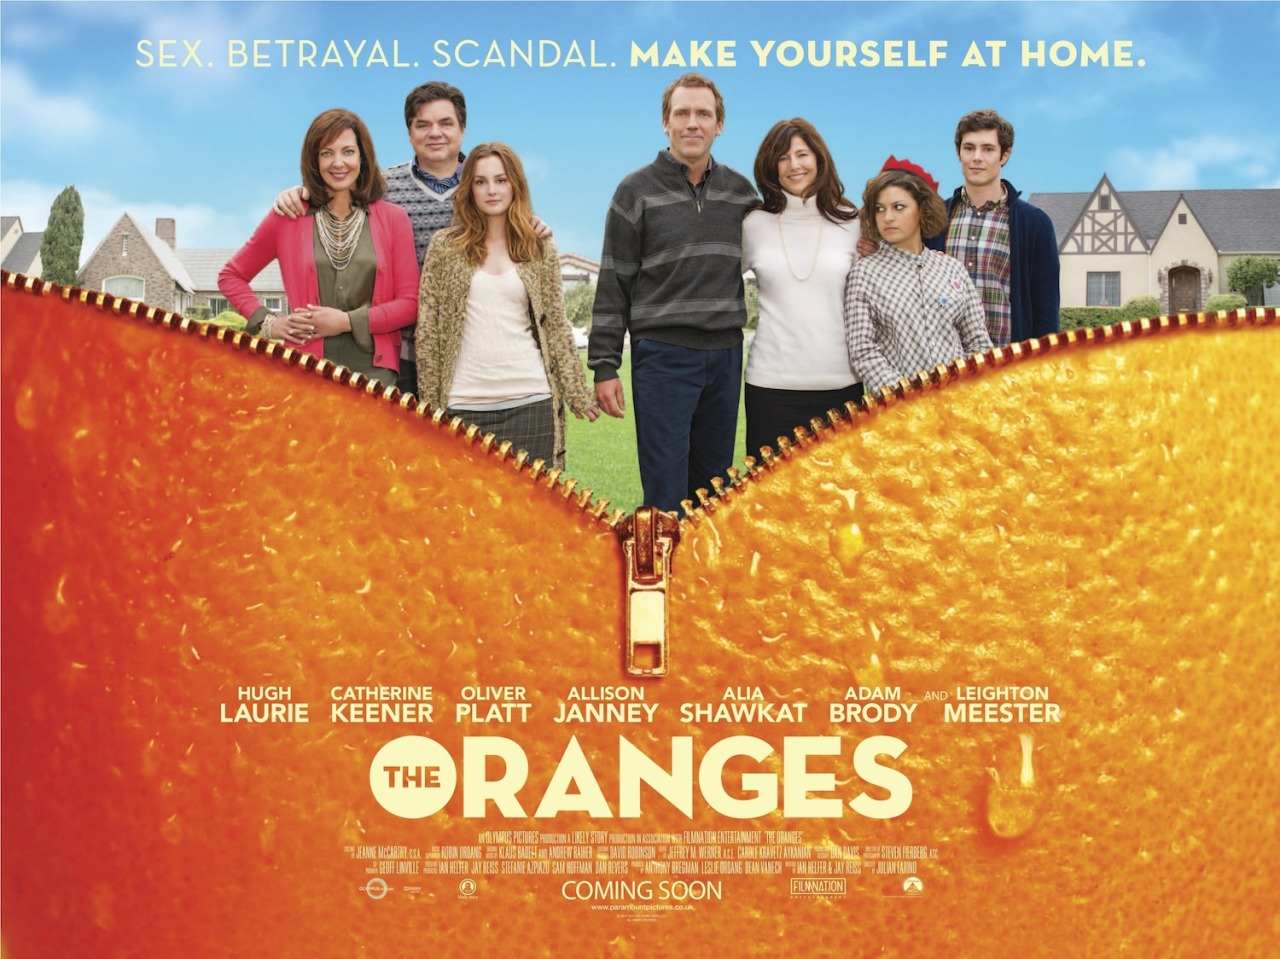 "The Oranges (2011)  The enduring friendship between the Walling and Ostroff families is tested when Nina, the prodigal Ostroff daughter, returns home for the holidays after a five-year absence and enters into an affair with David, head of the Walling family.  Spoilers:I am working on a screenplay all of this month, and for some reason today, I just cannot write. I keep hitting a brick wall. So I decided to watch this film. I have been wanting to watch it for a while, and now I understand why this wasn't on a wider release in the cinema and DVD. Good God it was rubbish!!!!! The ""friendship"" between the two families wasn't shown enough for me to care, I couldn't care less about them. Then, there was the romance. It was so gross because hot he may be, that Hugh Laurie, but come on…they have Adam Brody in the film!! They did not utilise him at all. There was zero chemistry between Leighton Meester and Hugh Laurie…they looked awkward. It wasn't fun watching them kiss (barf!!). I wanted them to break up immediately, before Adam Brody could find out about it (he had a minor role, came in the beginning of the film only to bugger off to China and then appear again at the end of the film). Why do people make such rubbish movies? I am pretty sure, this story did not look good on a screenplay either.  Such a great cast, and so wasted here. Anyway, the movie sucked but my writer's block seems to have lifted, so I am going to waste no time, and get back to my script!"